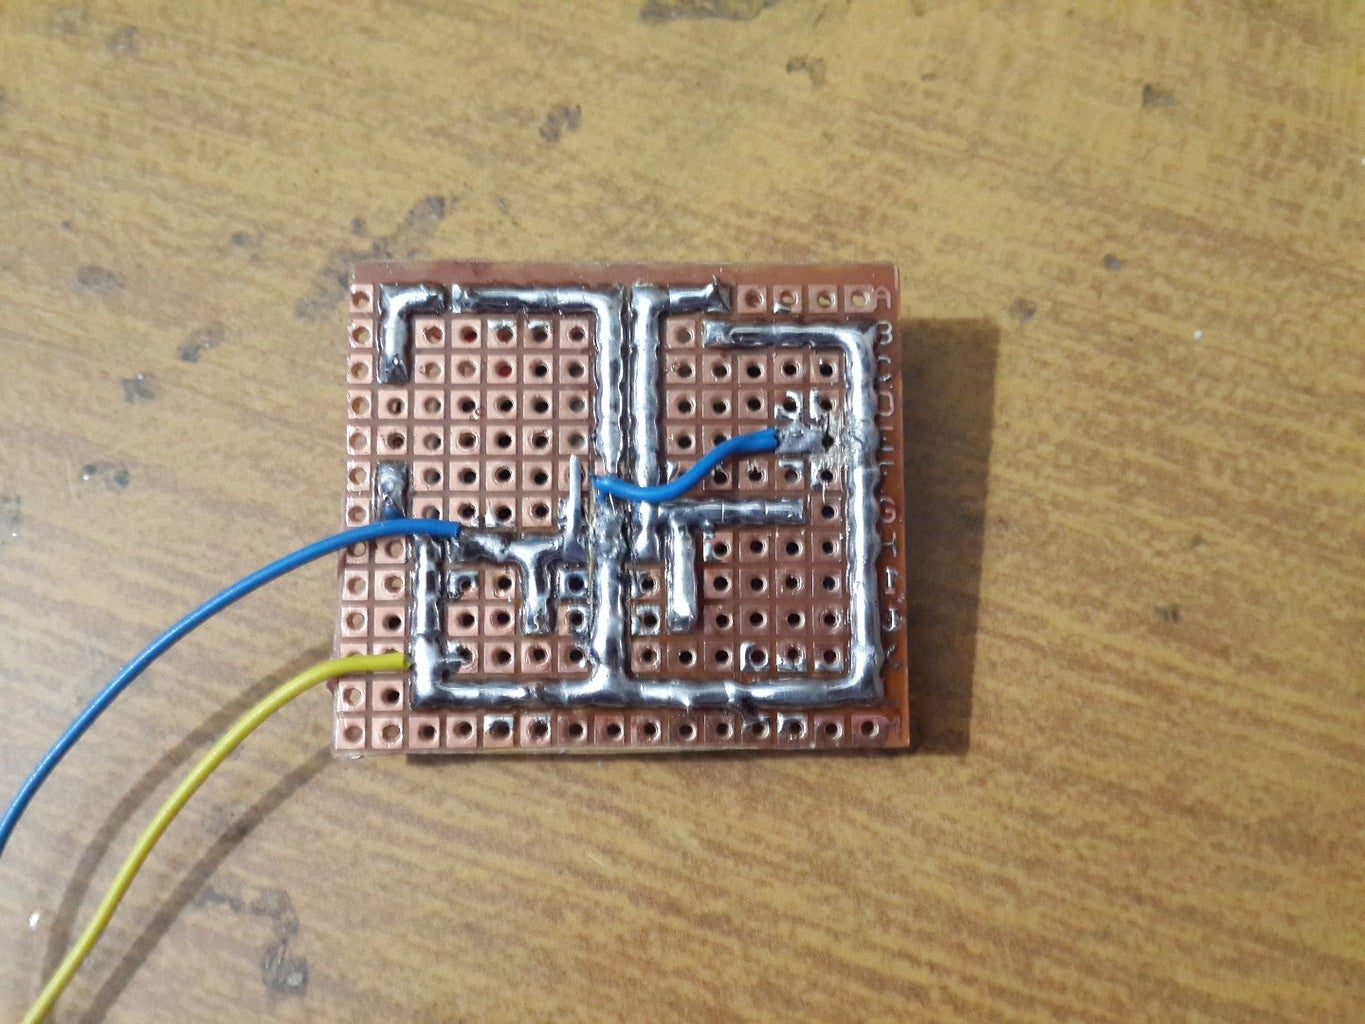 Placing and Soldering Components